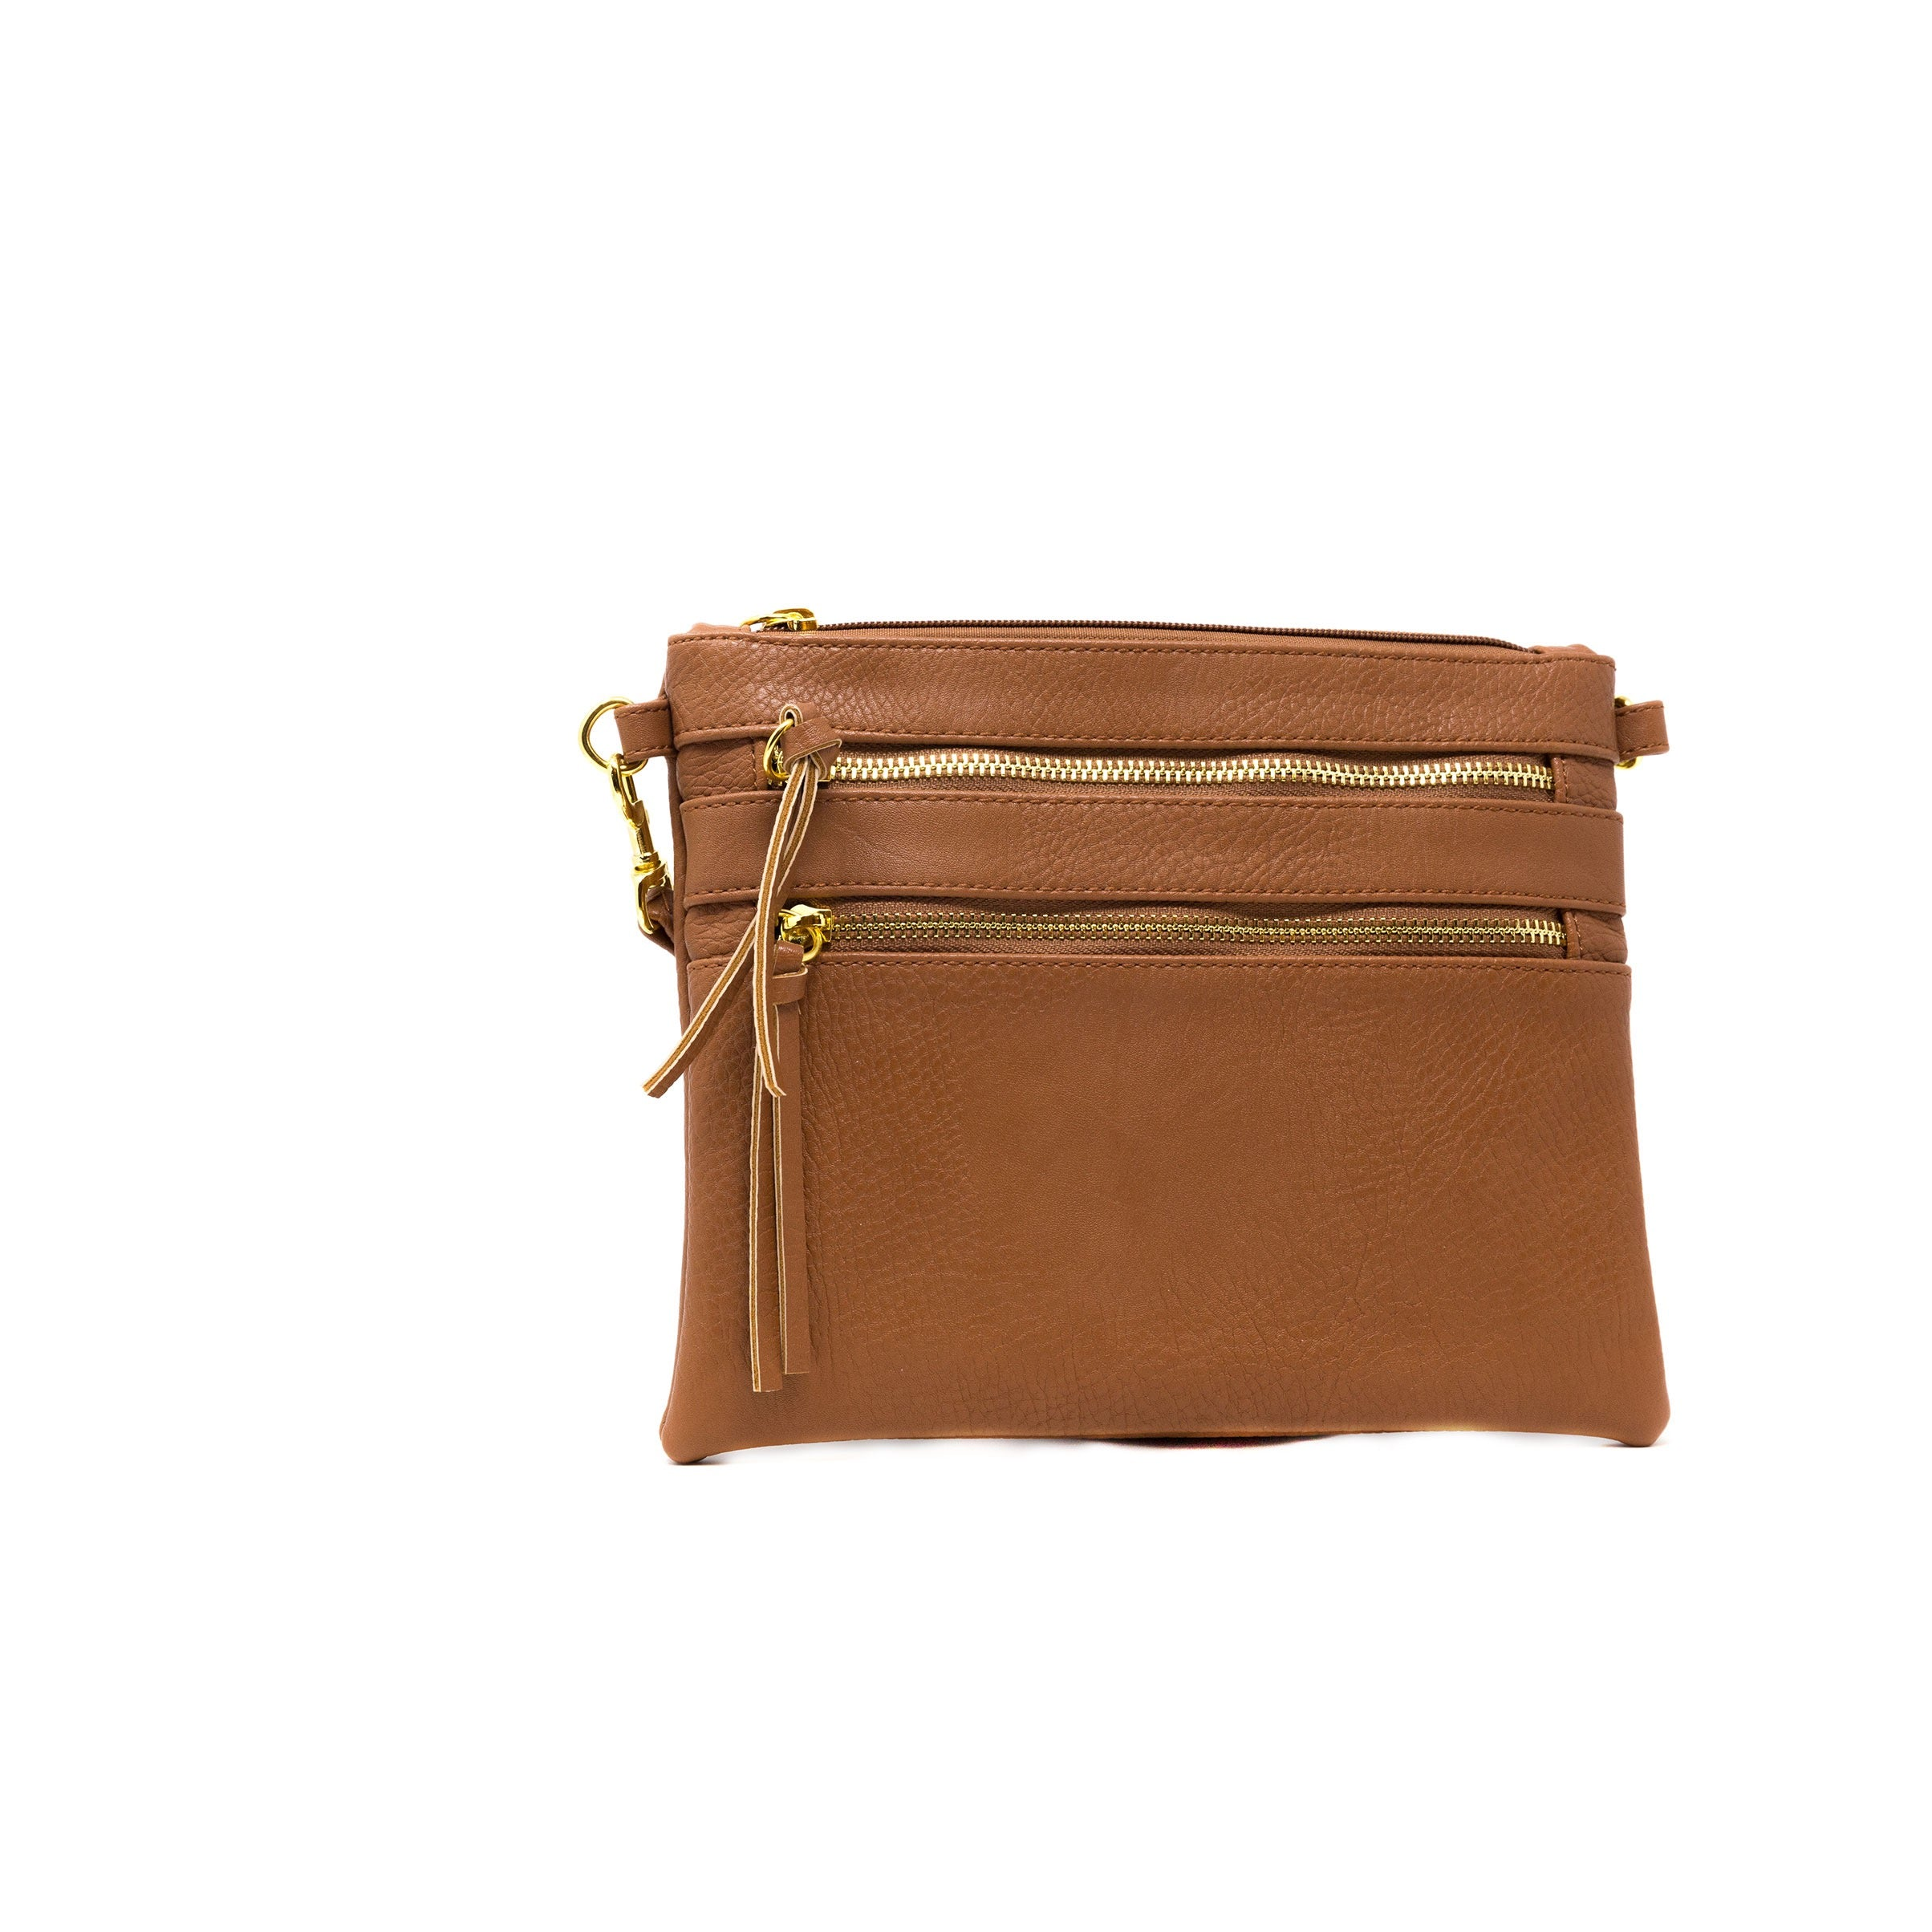 vegan leather tan crossbody bag